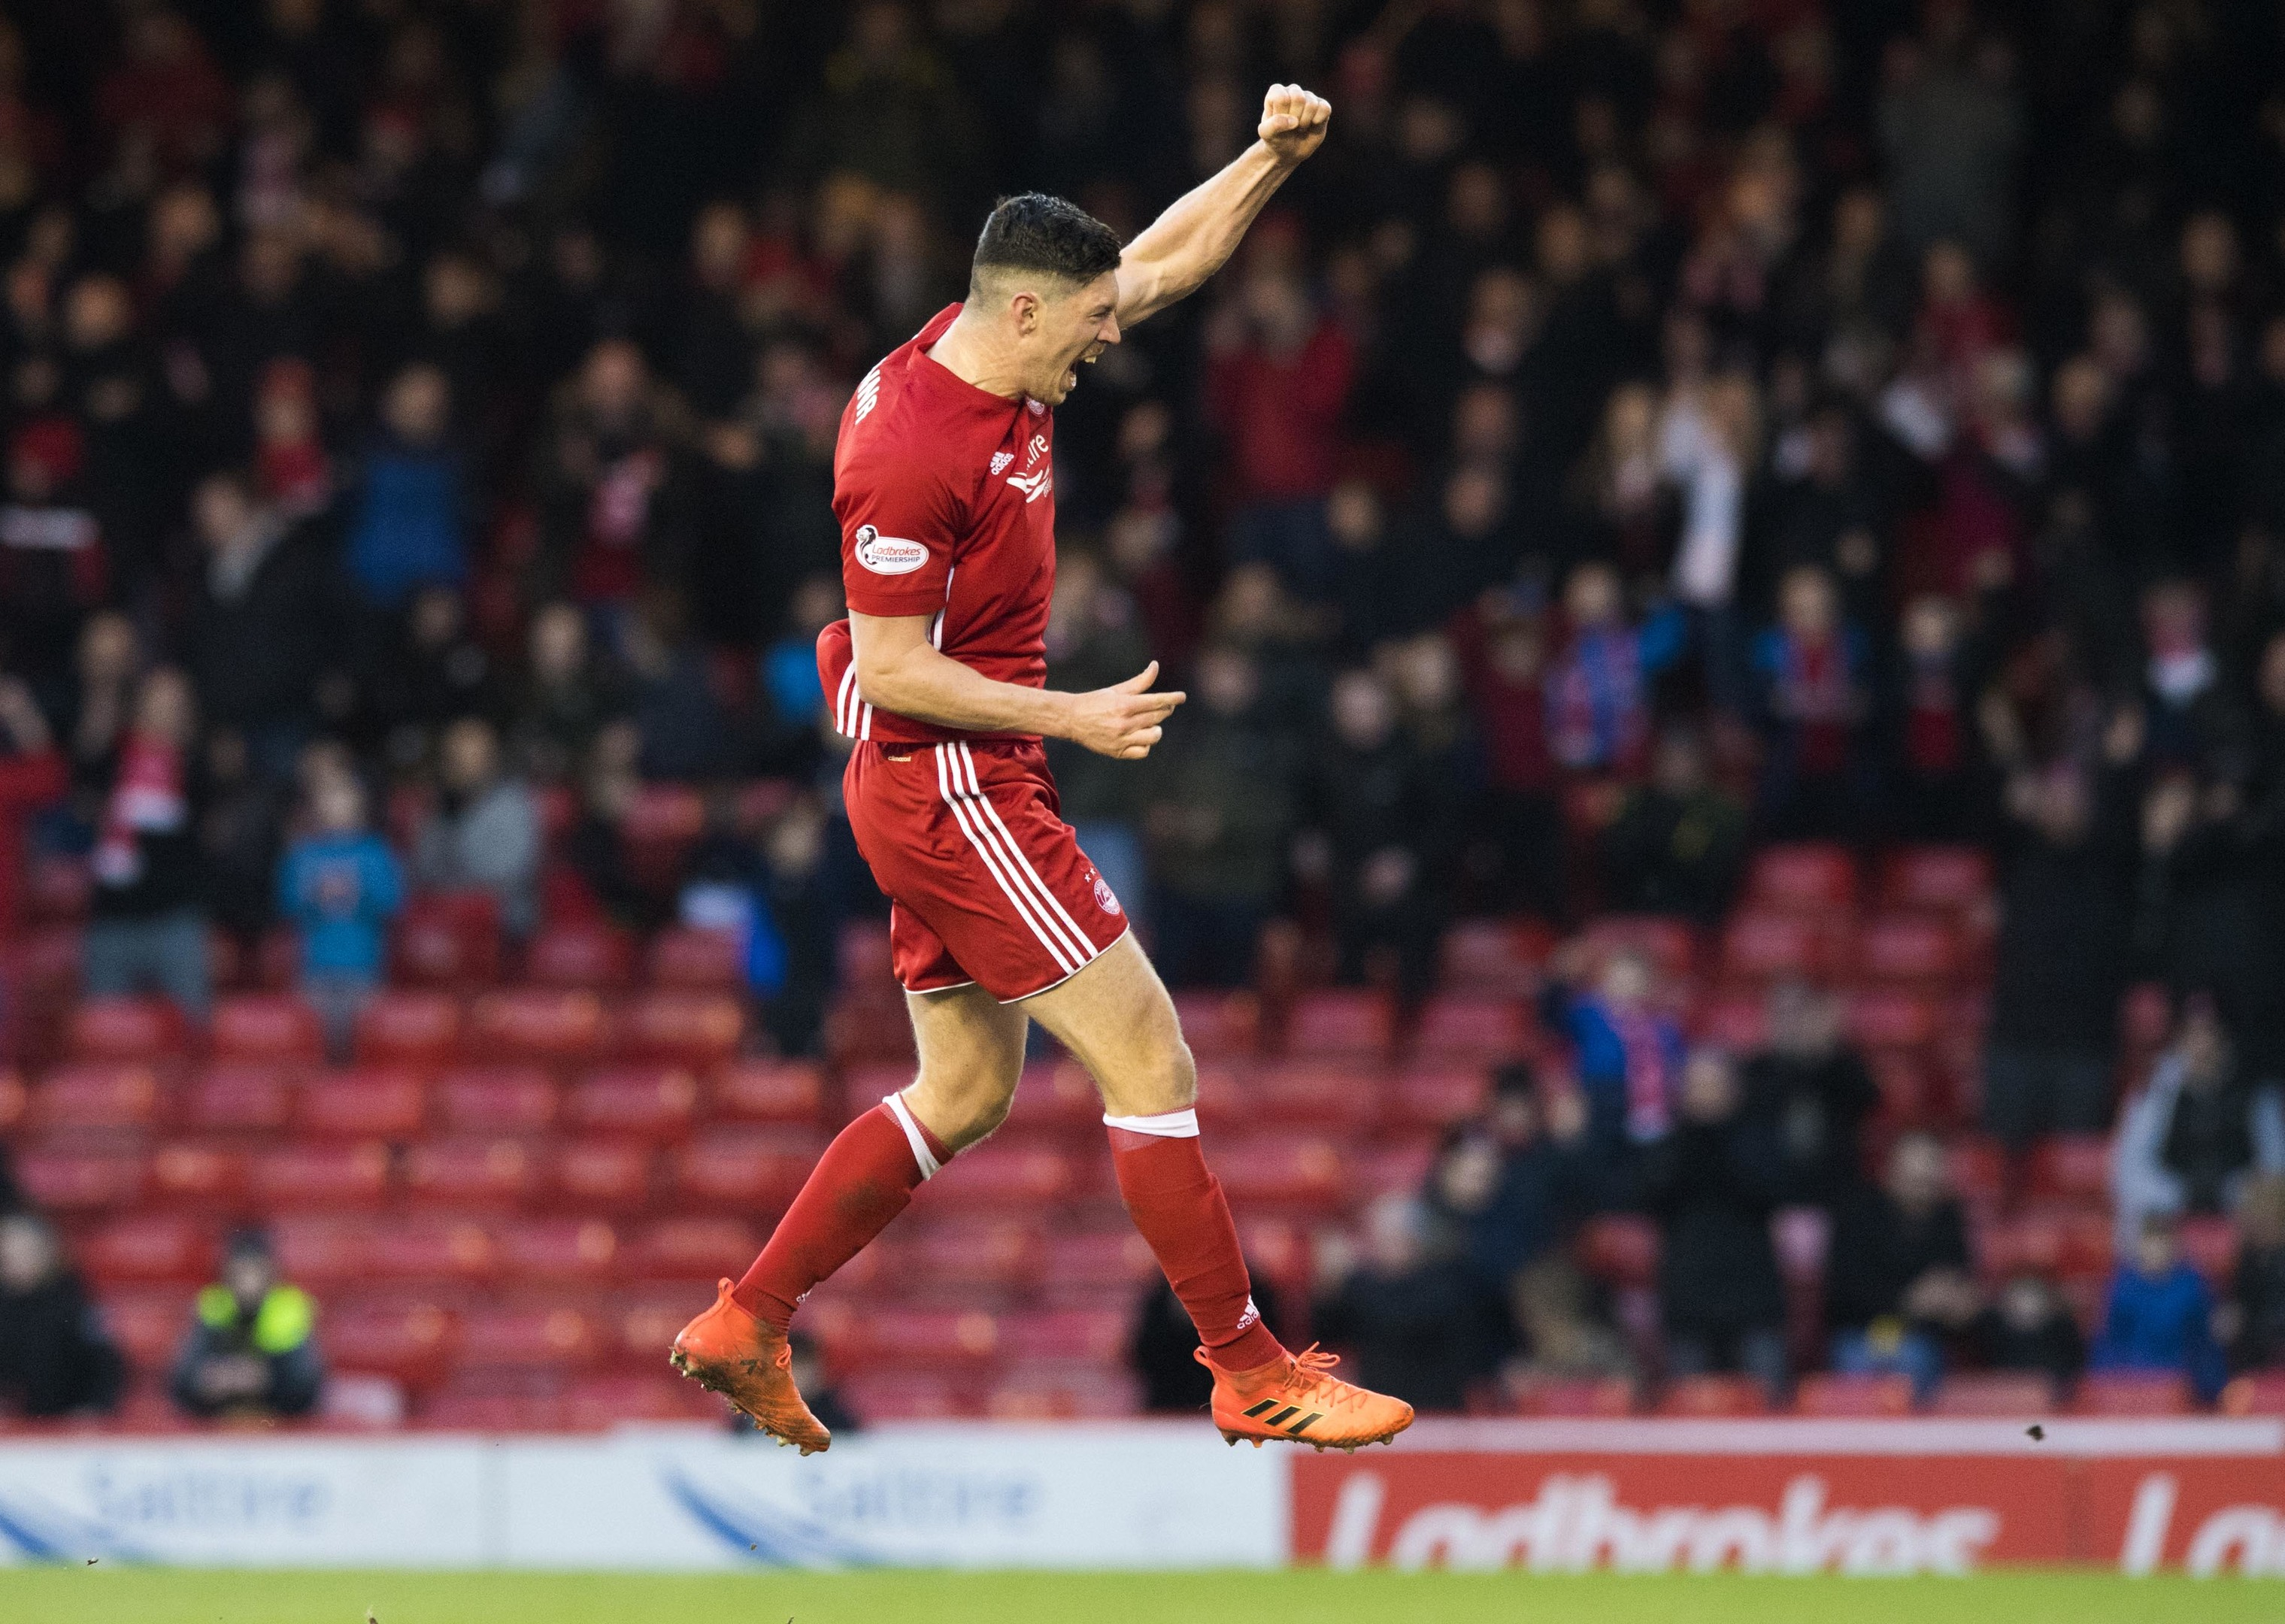 Scott McKenna has been the subject of an approach by Swansea City.